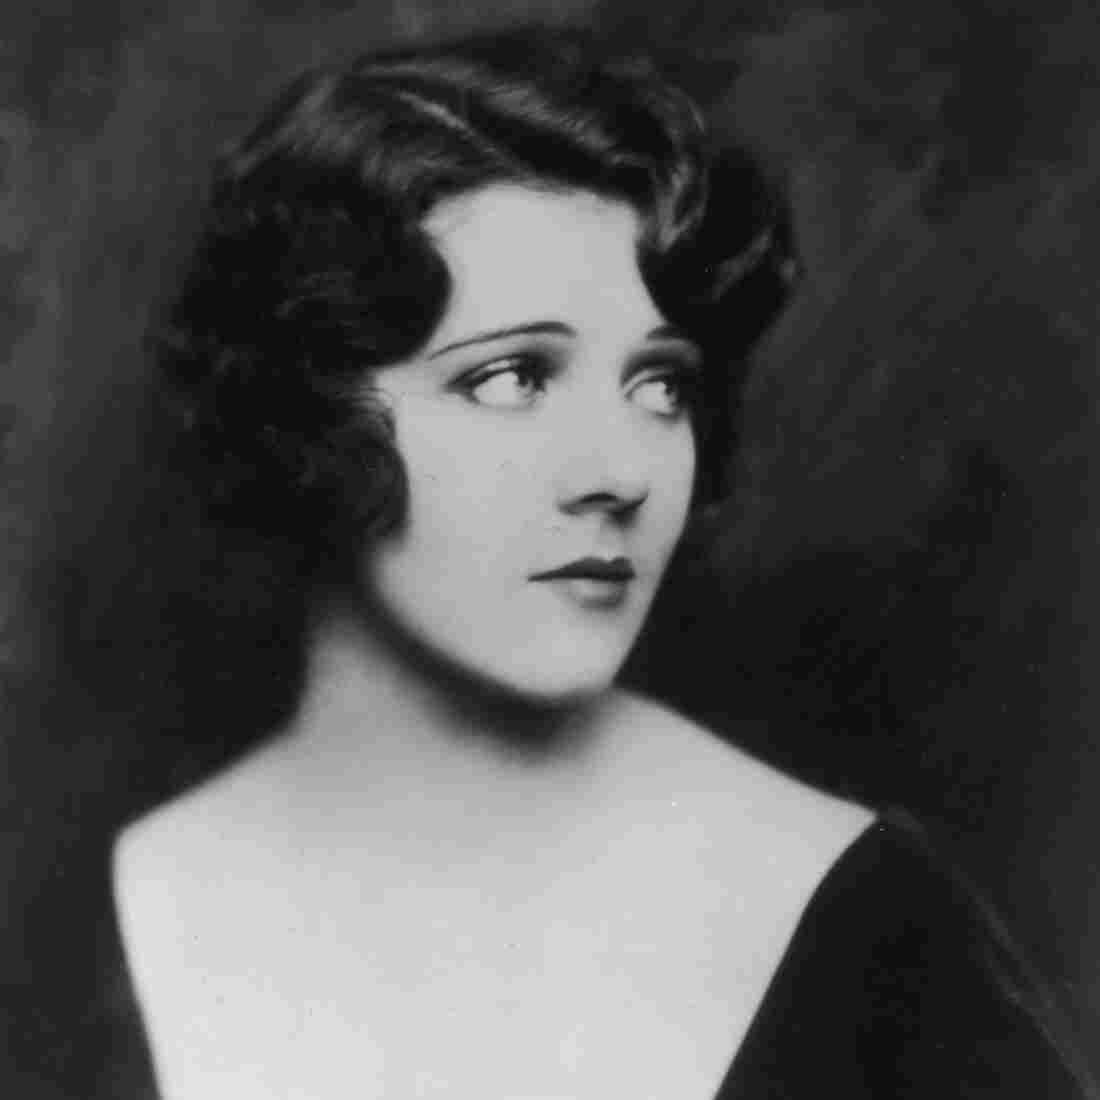 For Actress Ruby Keeler, Another Opening, Another Show